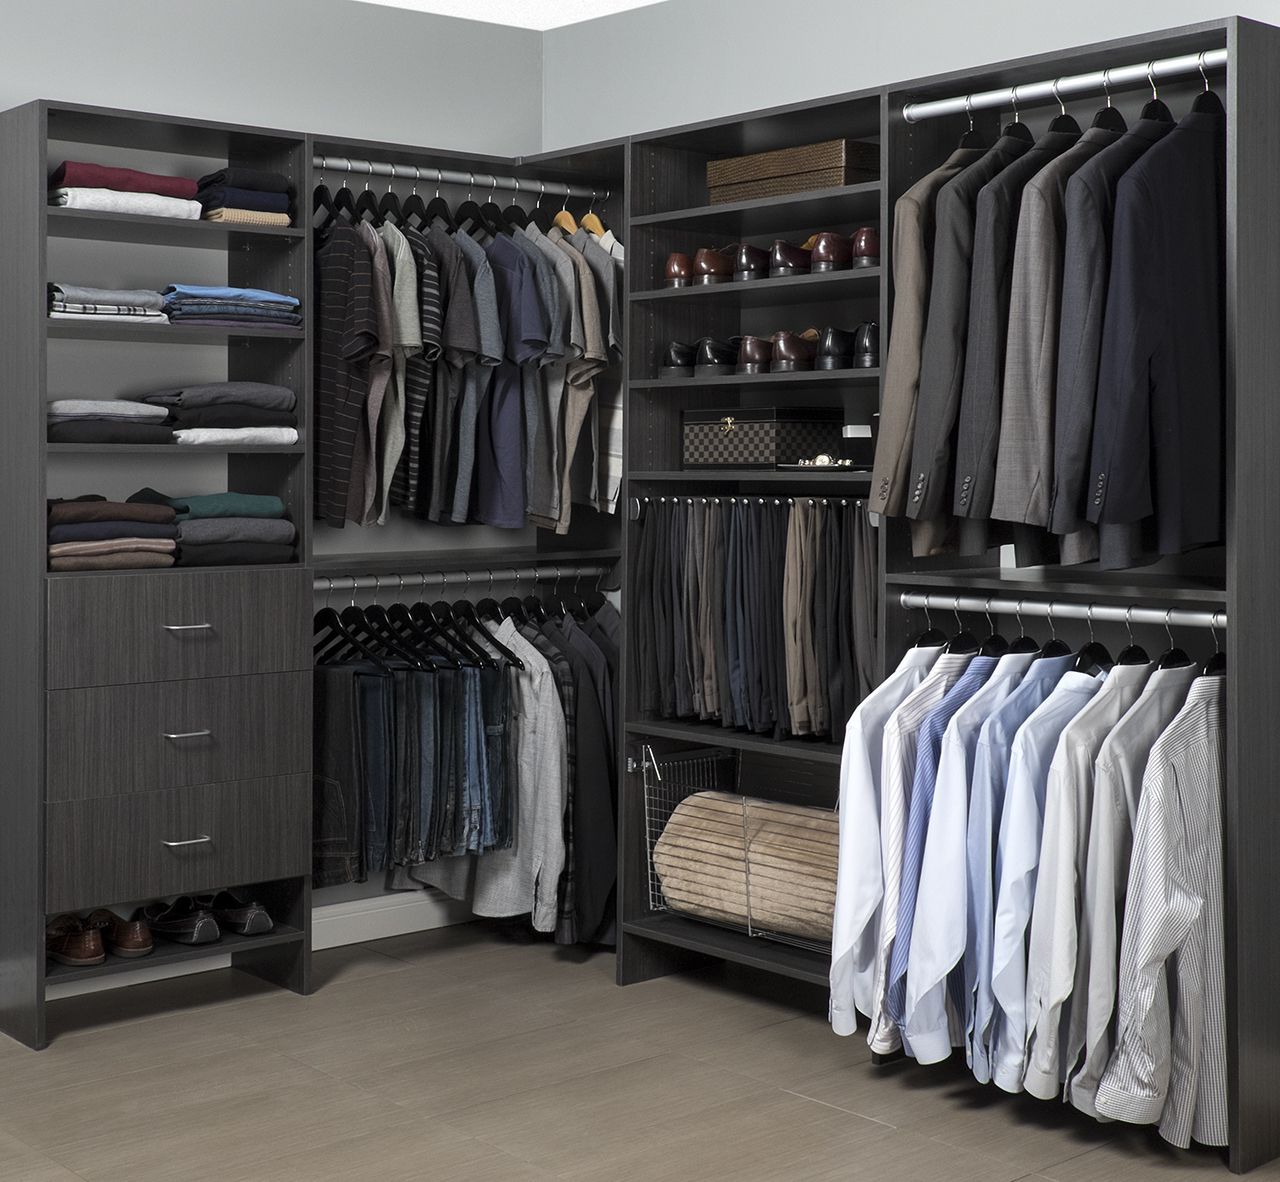 Our hoboken nj window treatments store creates custom for How to design closet storage